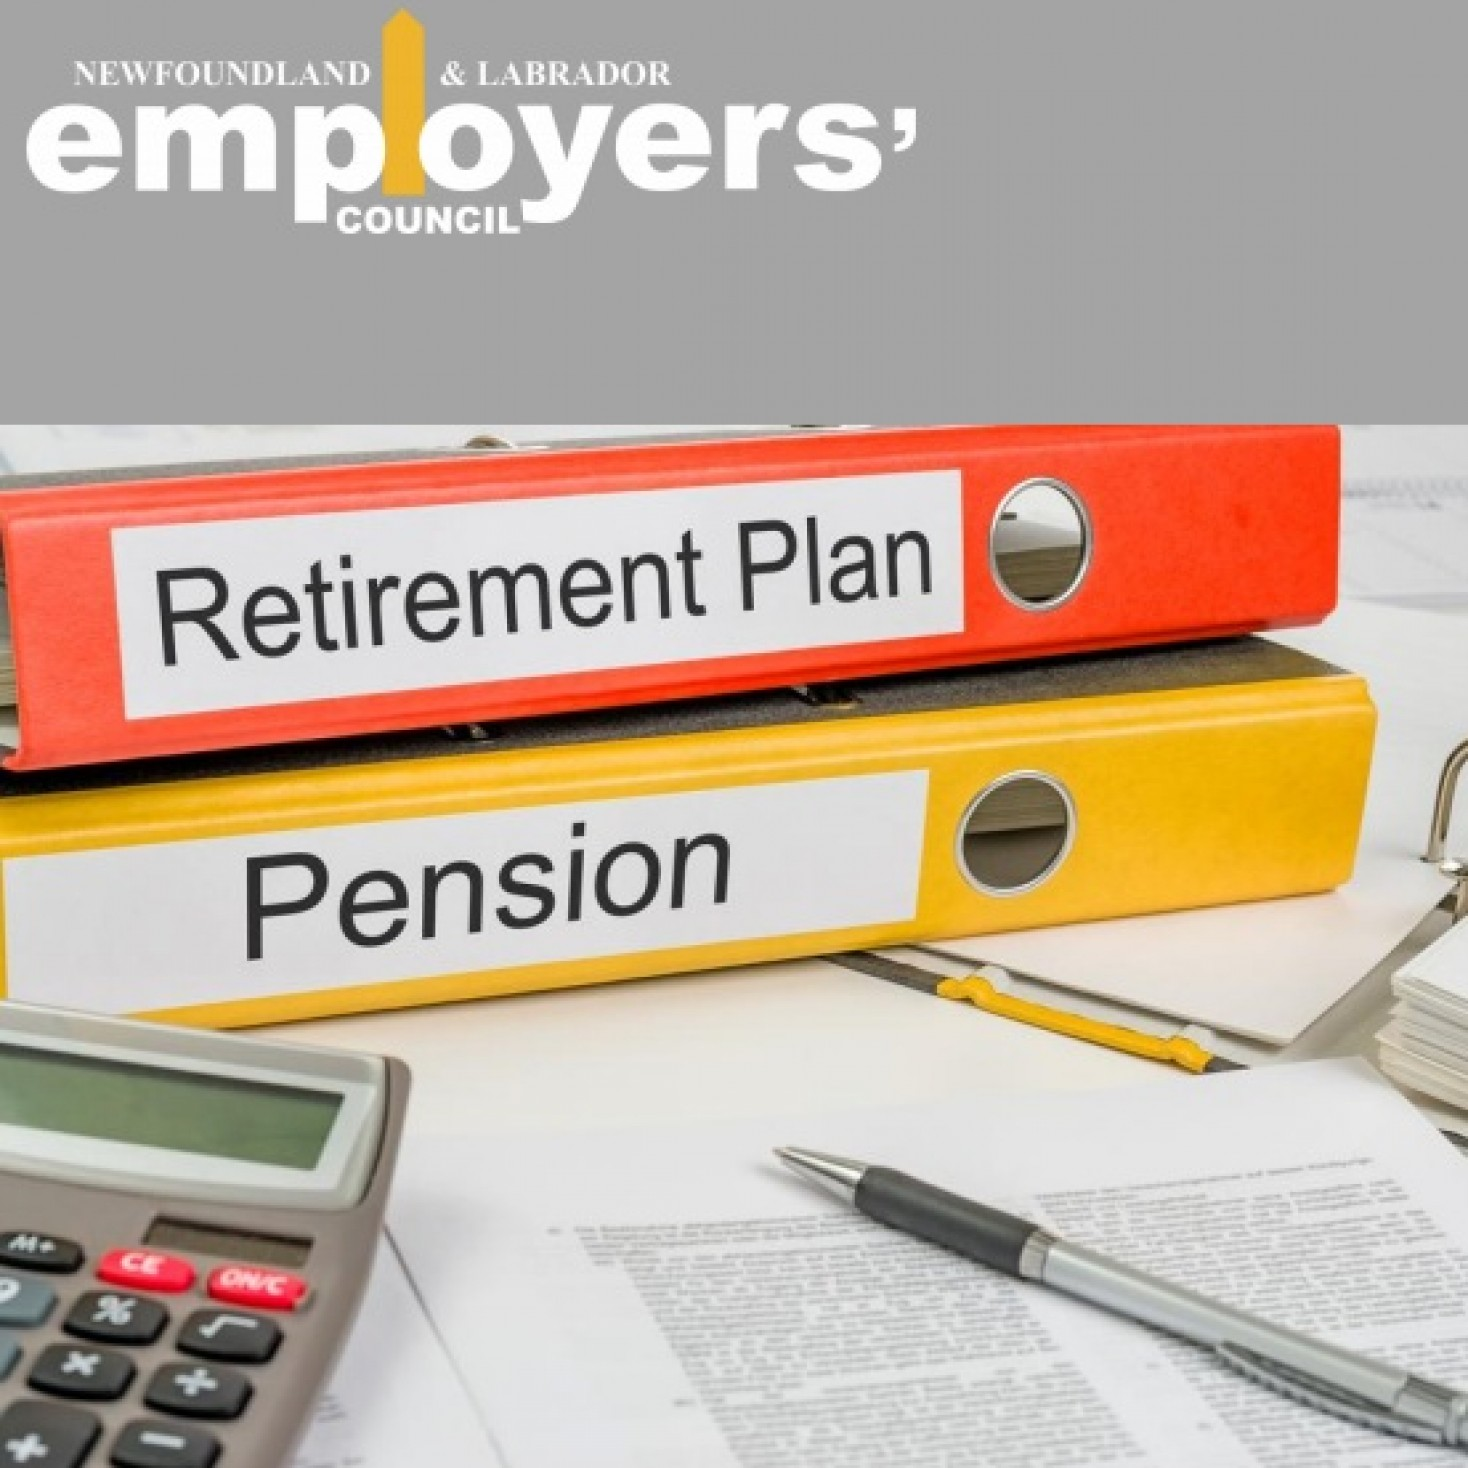 NLEC Position on Pooled Registered Pension Plans (PRPPs)